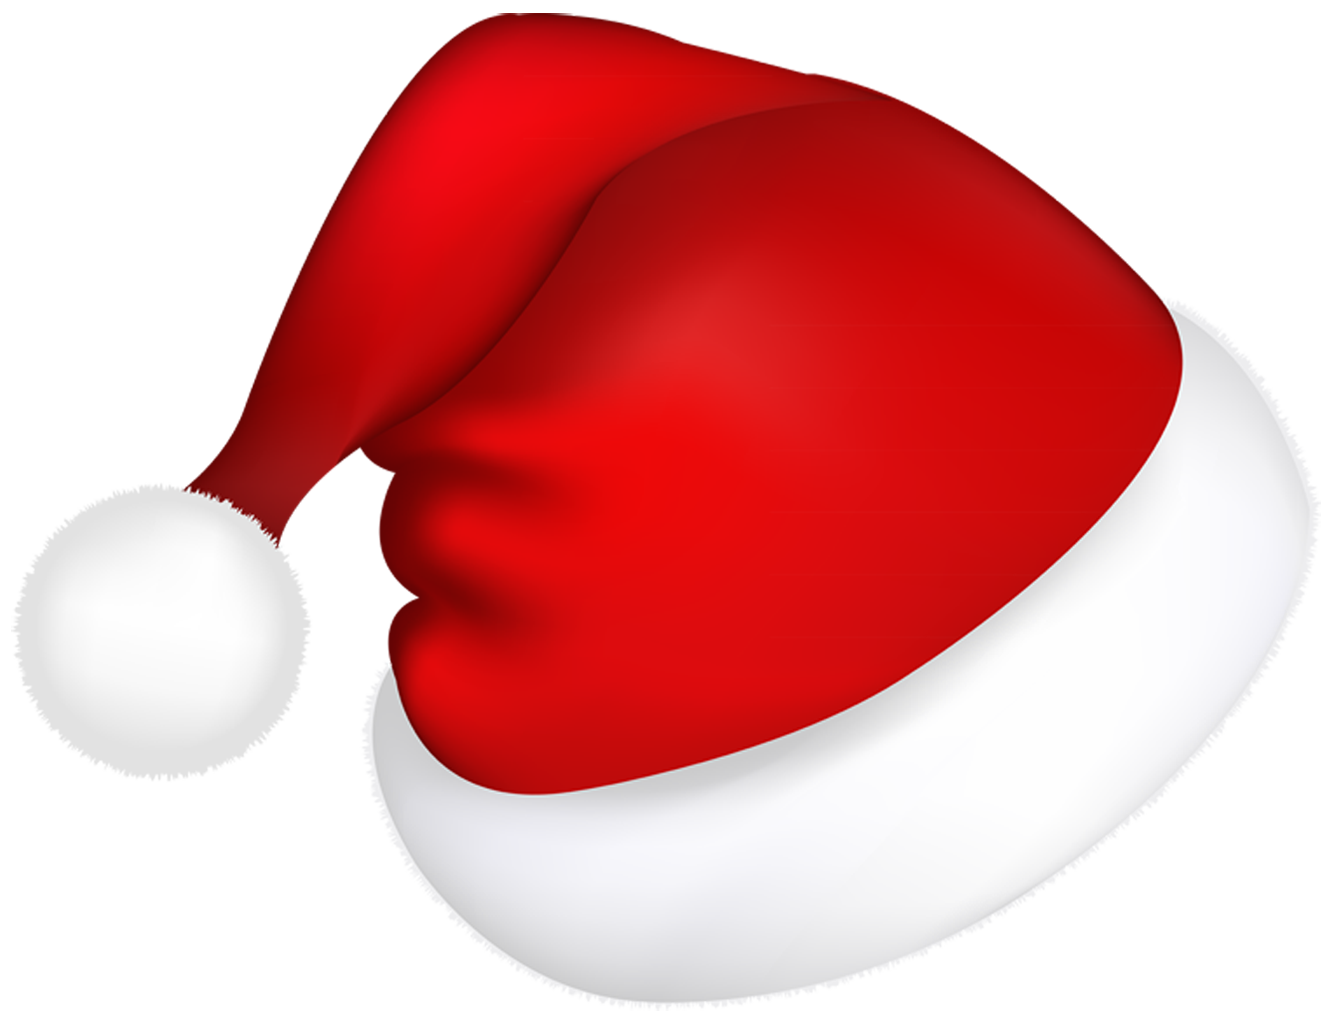 Christmas Hat Clipart - Cliparts.co